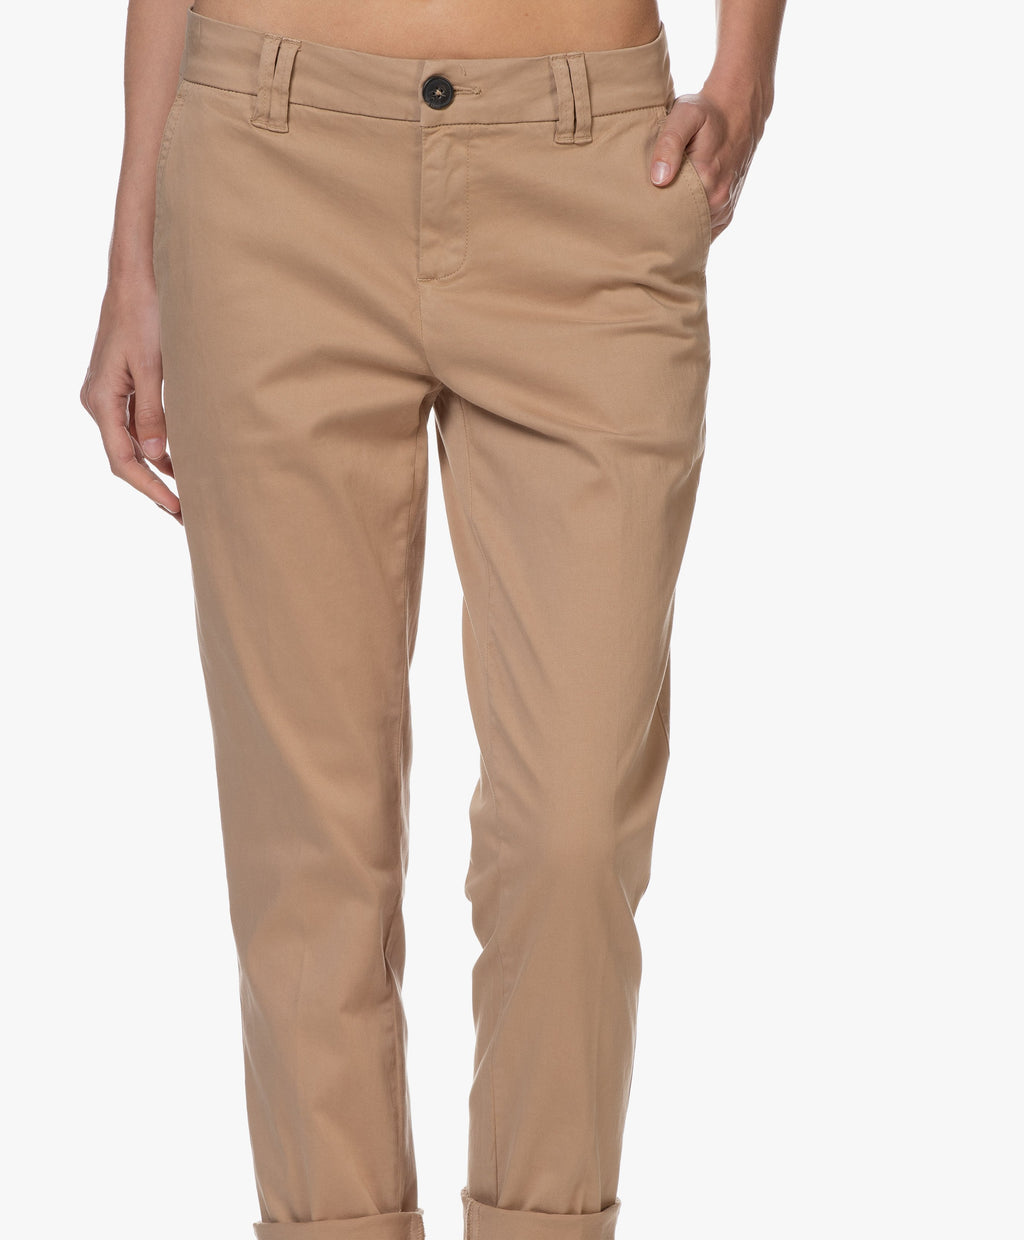 MKT Studio Sable Panamo Pants